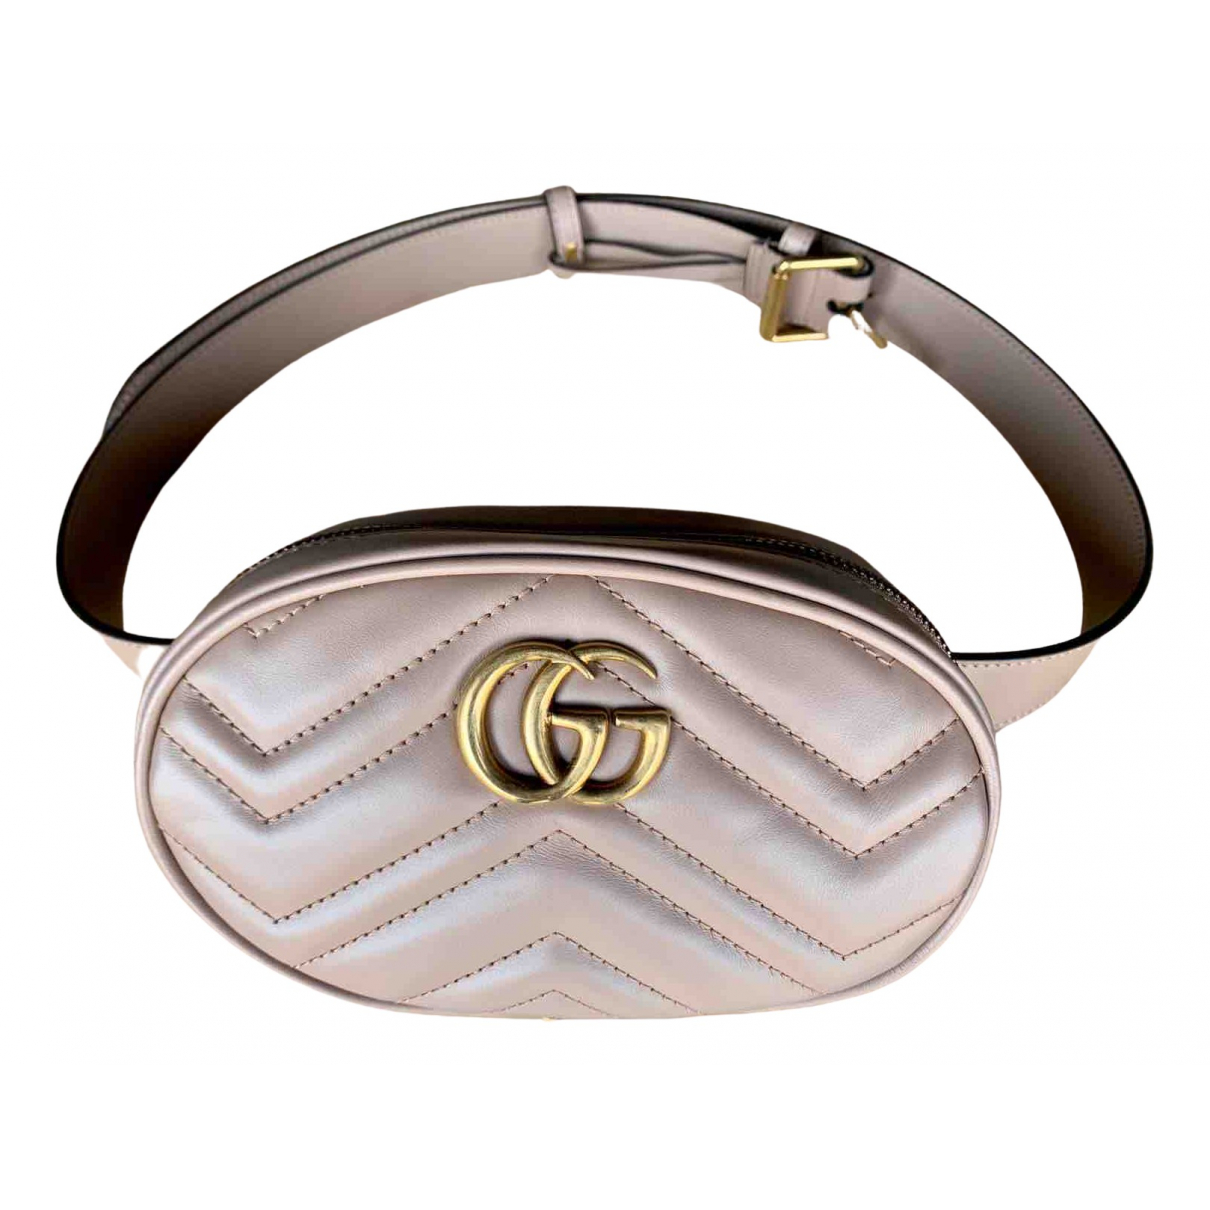 Gucci Marmont Beige Leather Clutch bag for Women N